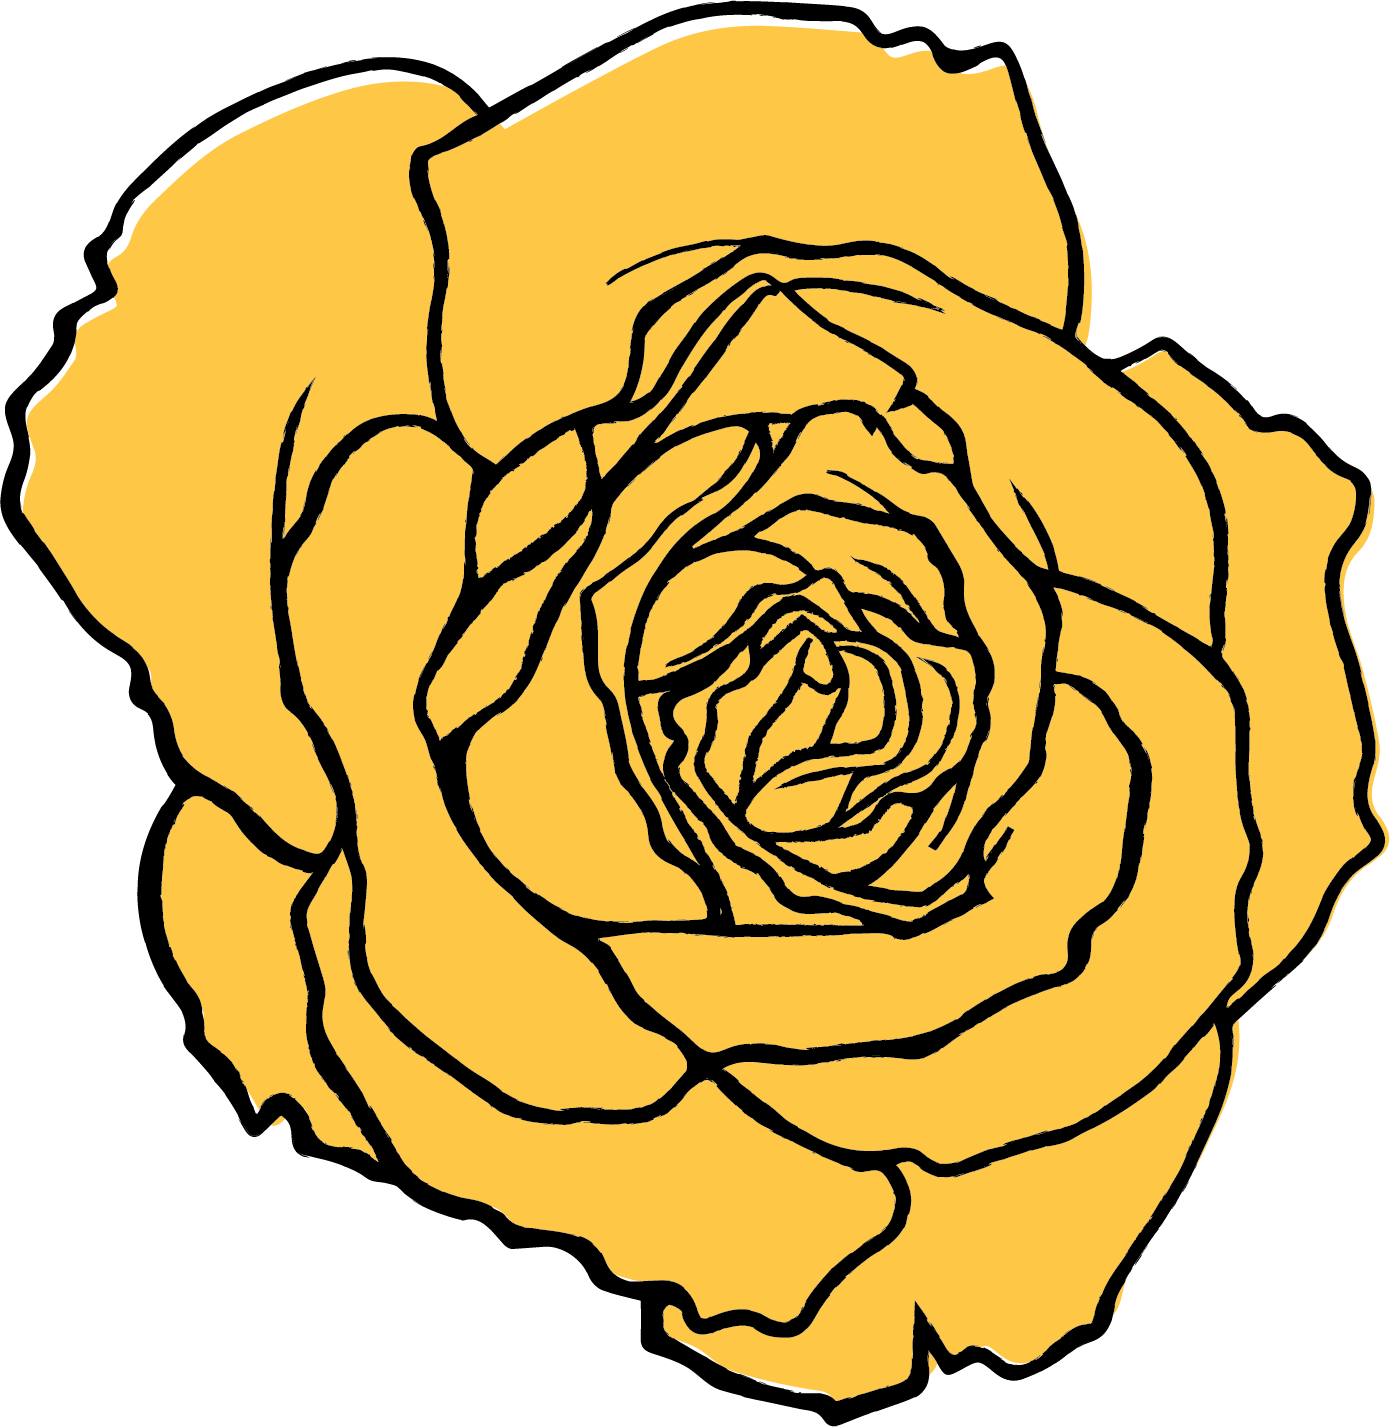 Yellow_Rose.png